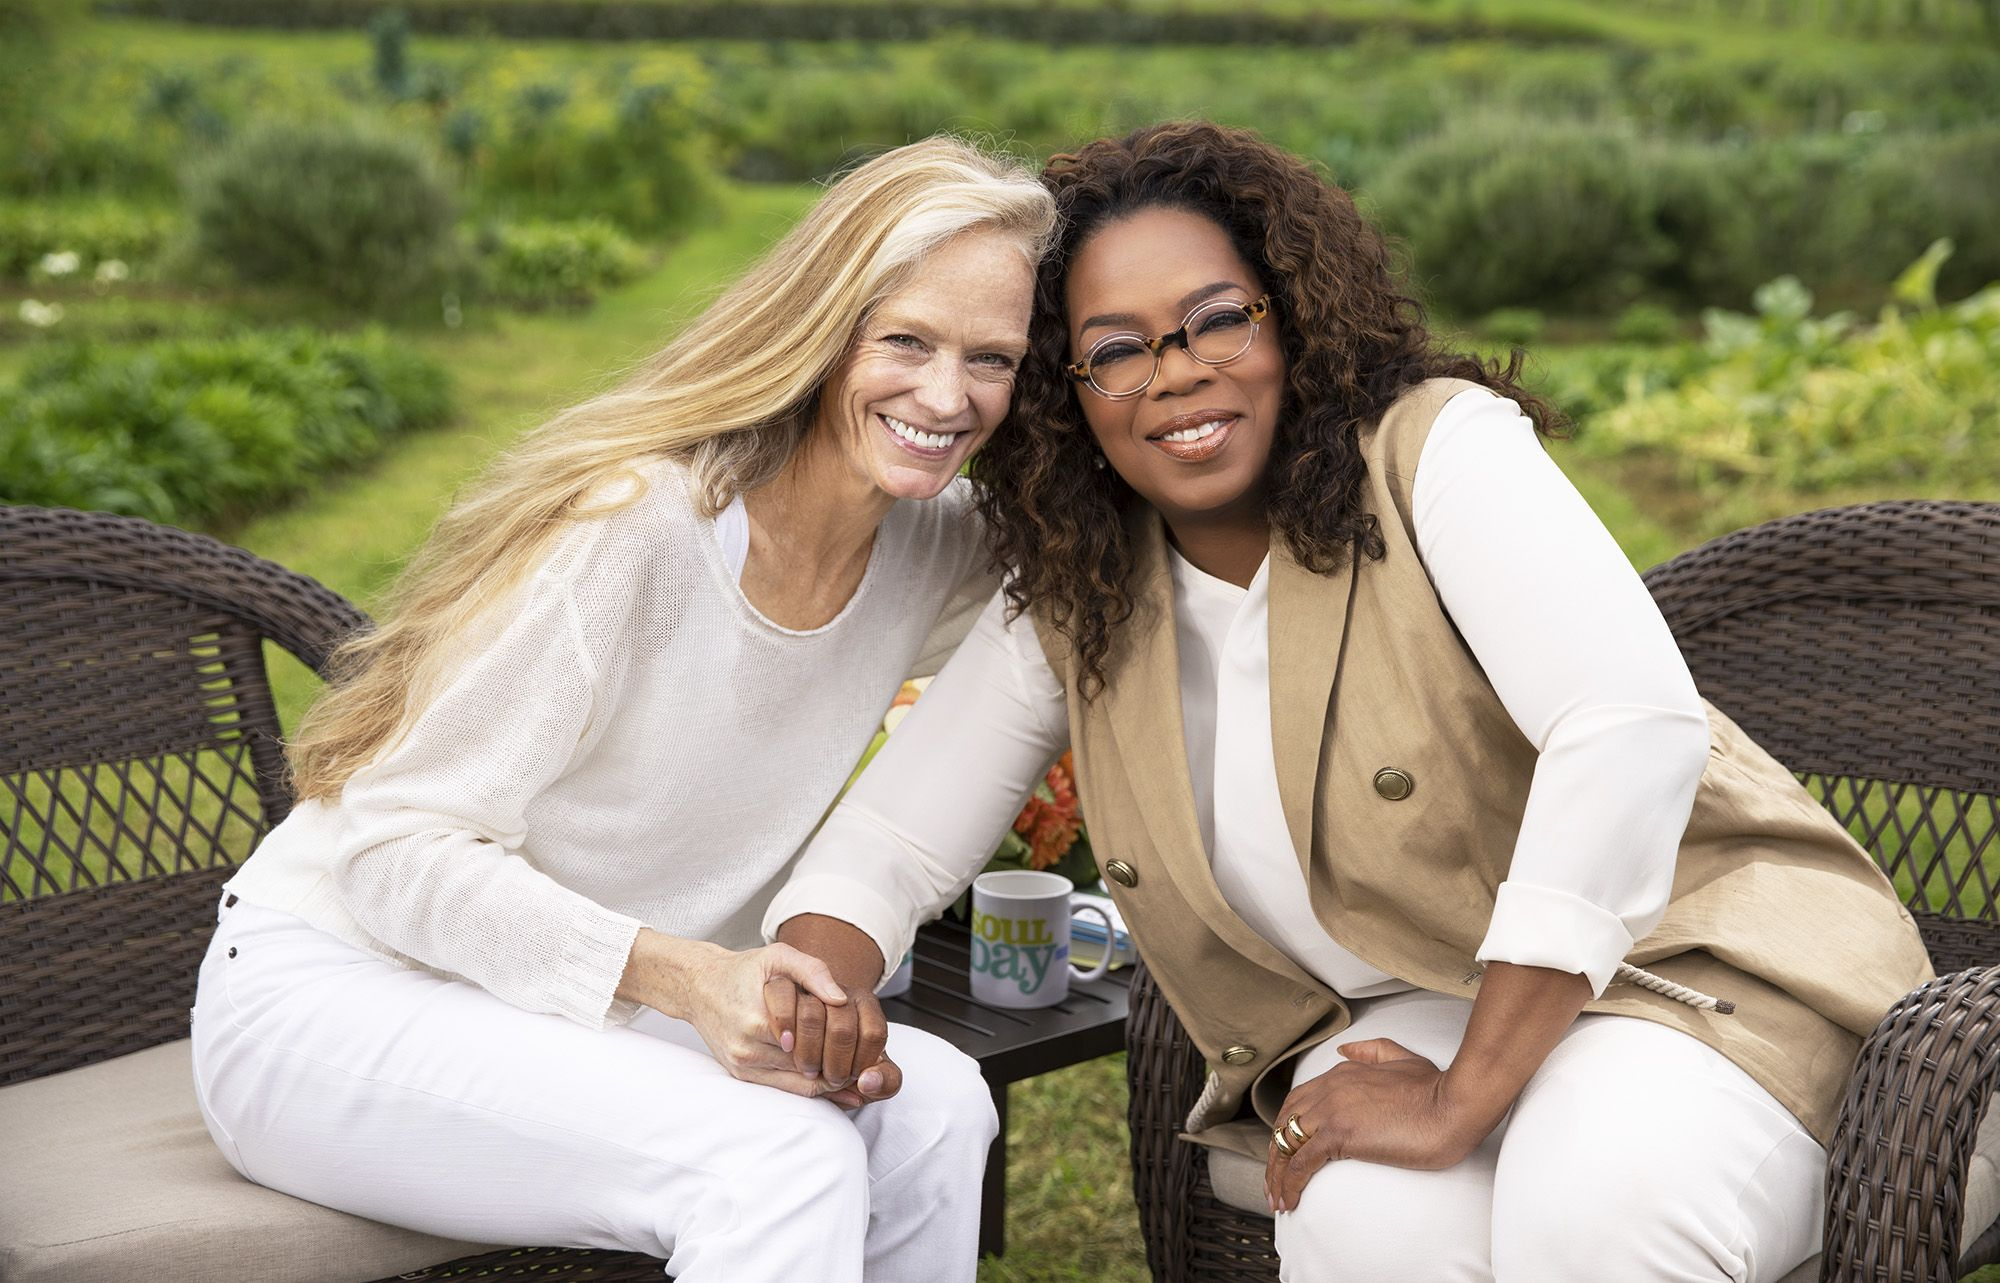 Oprah Talks to Suzy Amis Cameron About the Benefits of Eating One Plant-Based Meal Every Day